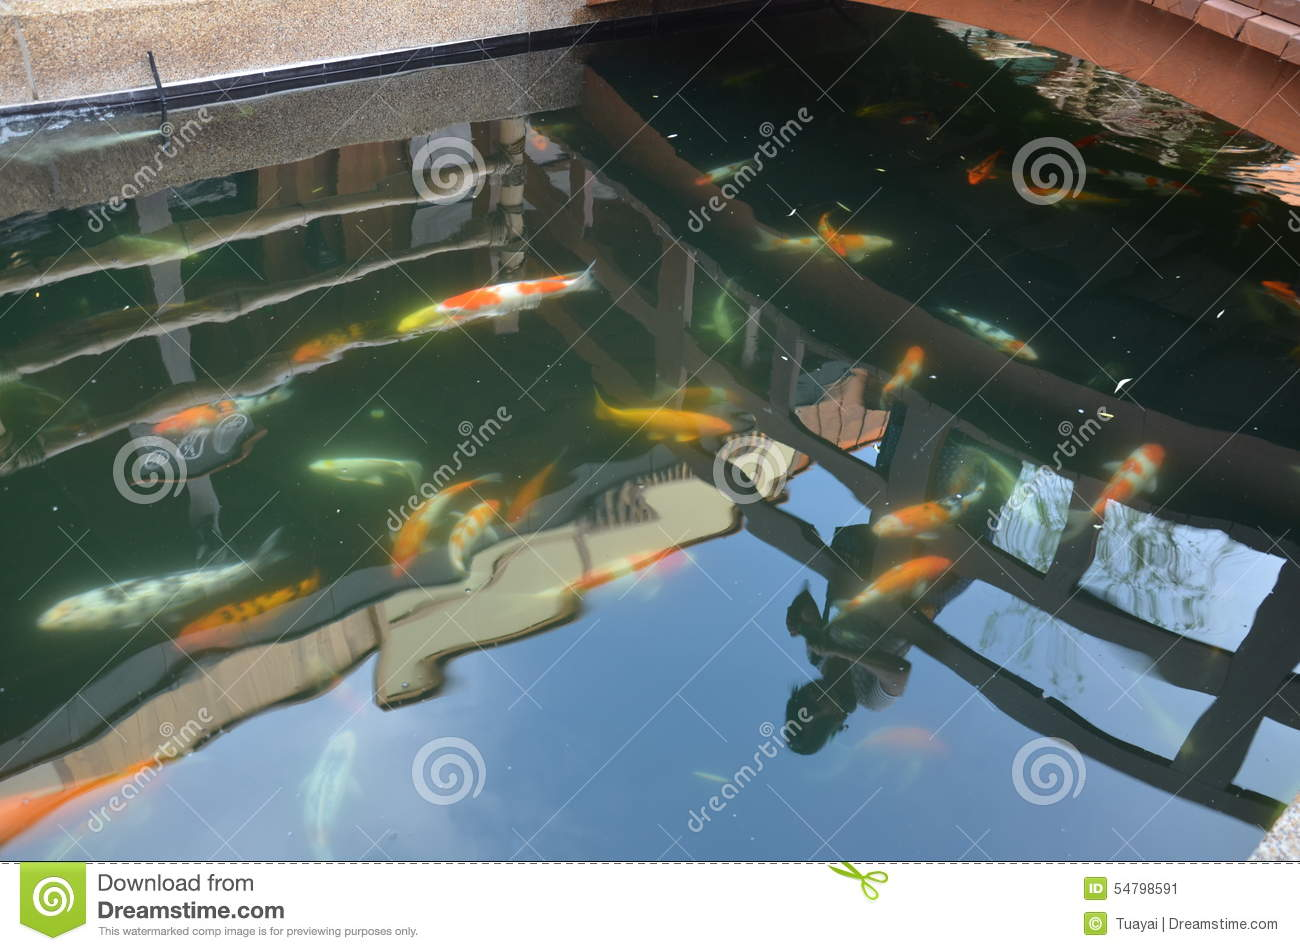 Fancy carp or koi fish in the garden stock photo image for Oily fish representative species